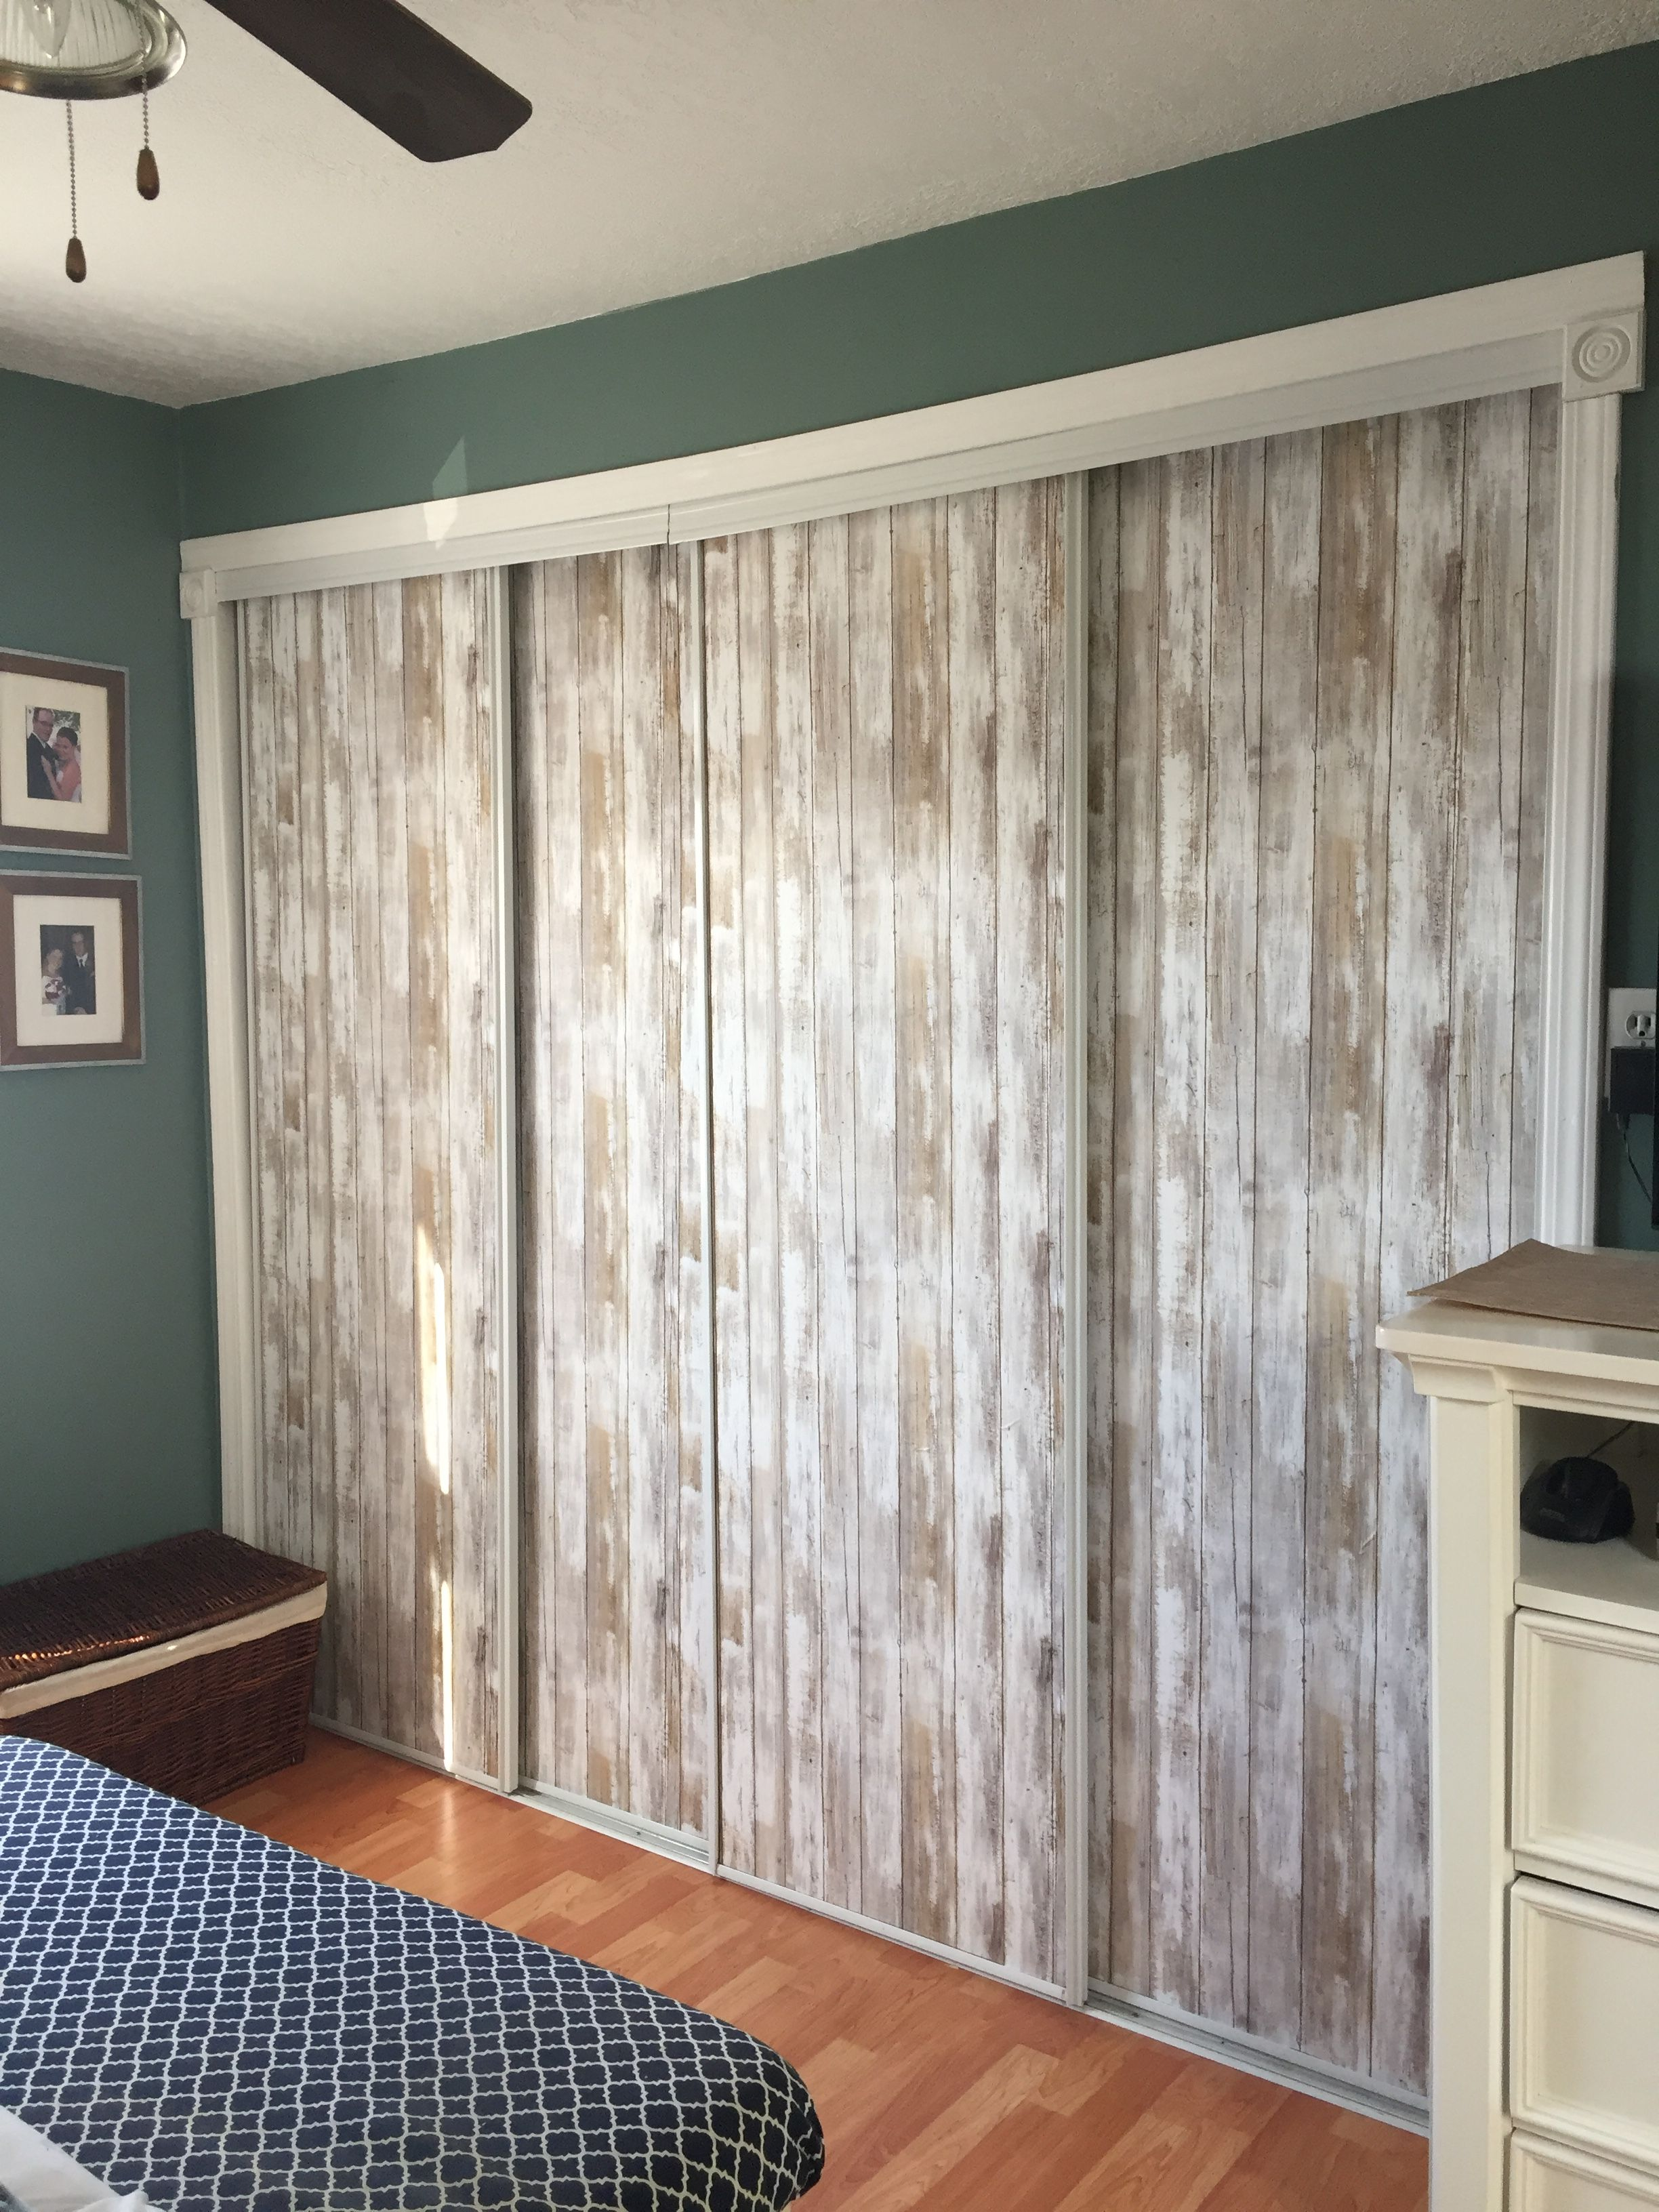 Peel And Stick Barnboard Wallpaper To Give Mirrored Closet Doors A Major Upgrade With Minimal Cost Mirror Closet Doors Closet Doors Mirrored Cabinet Doors